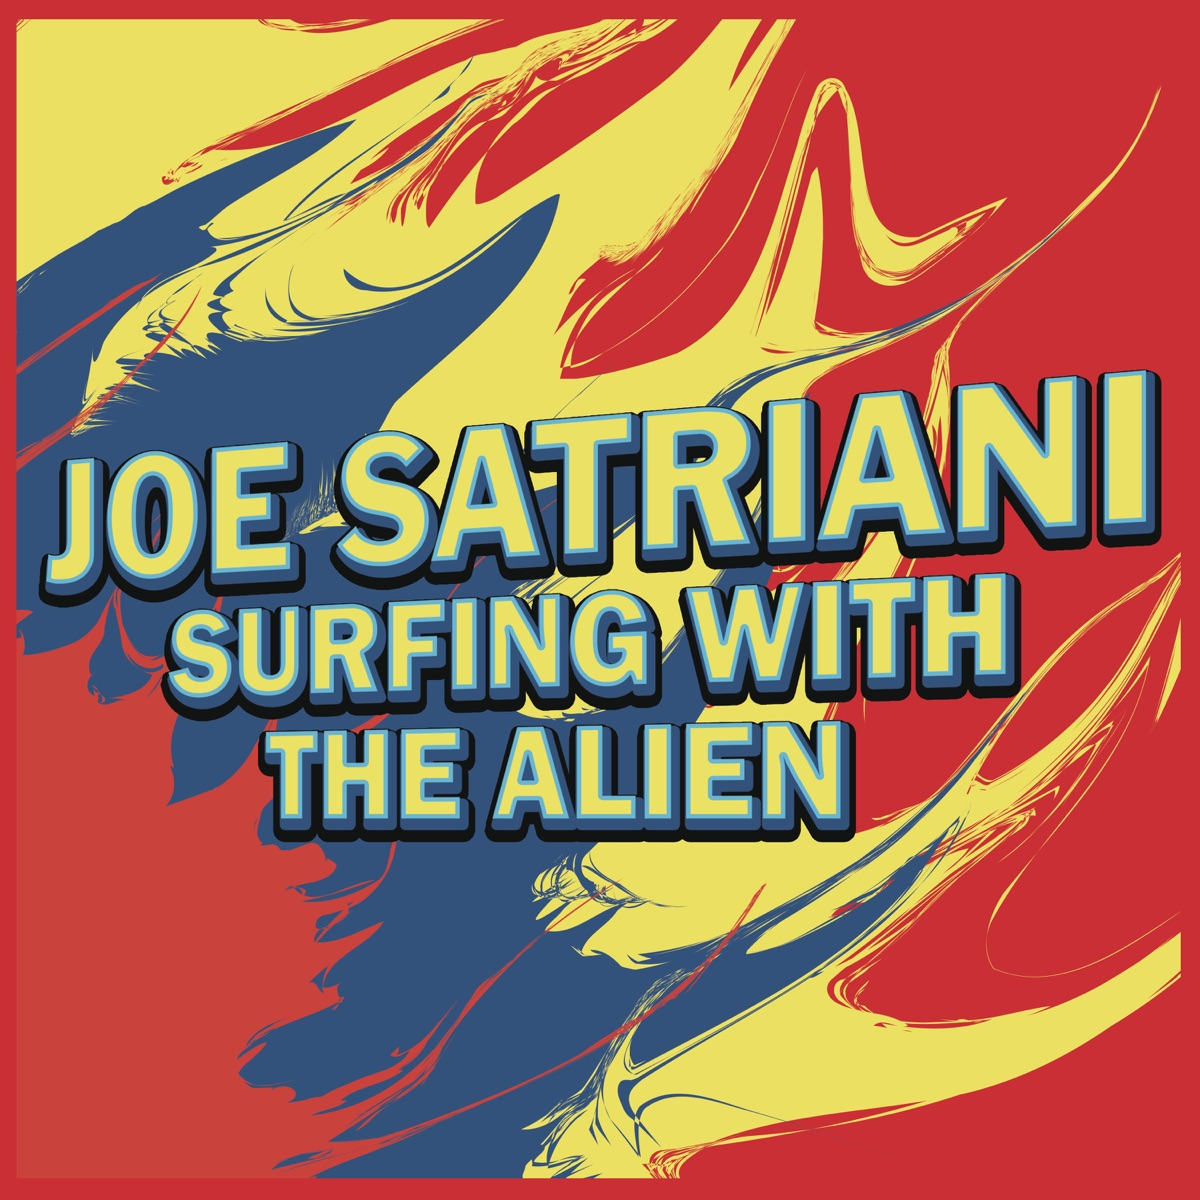 Surfing With the Alien Joe Satriani CD cover